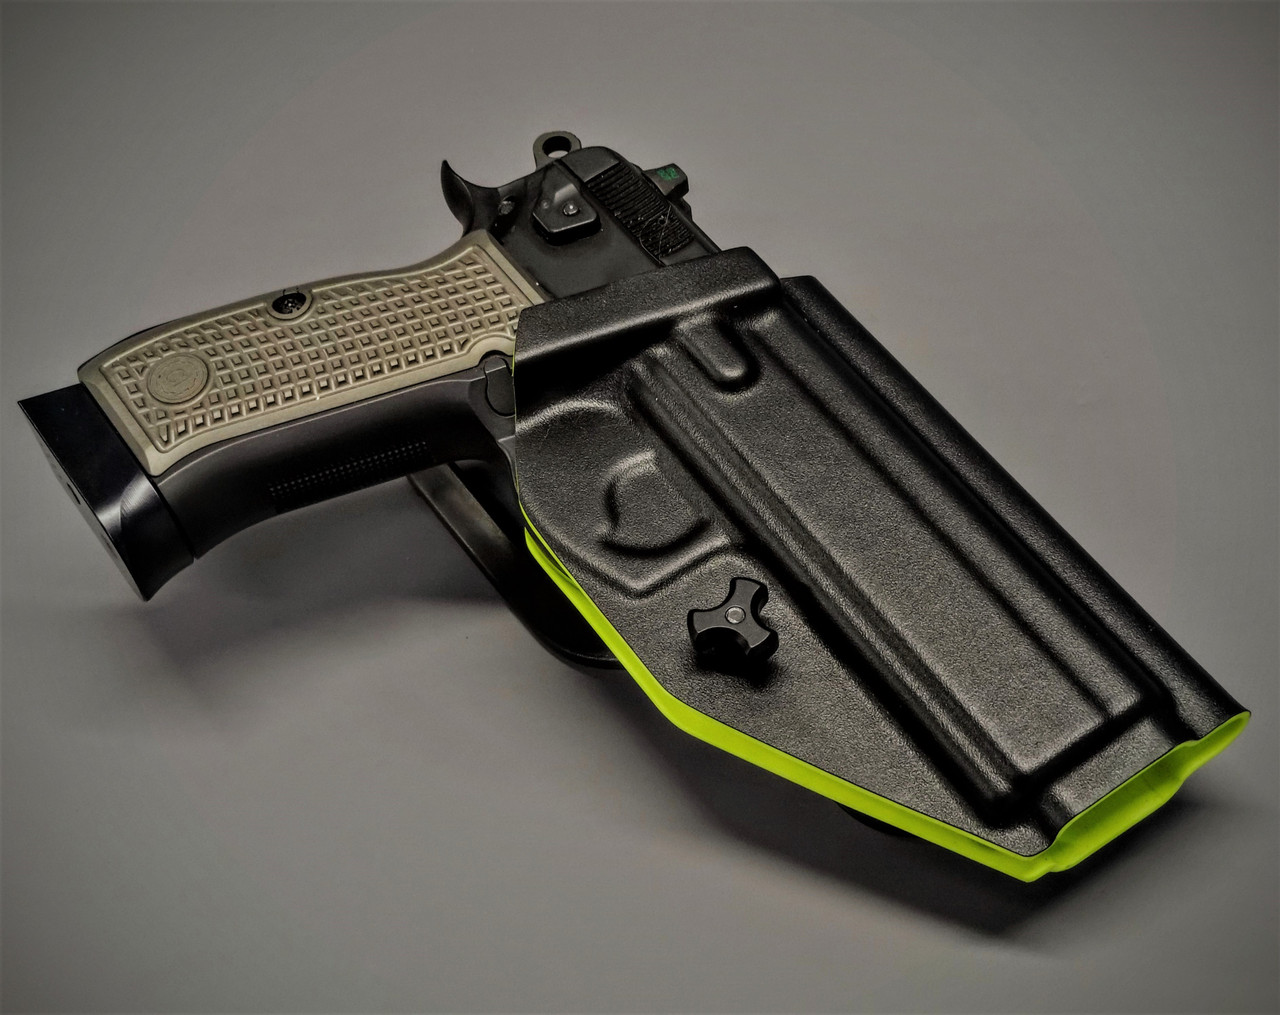 CZ SP-01 Safariland UBL Drop Holster